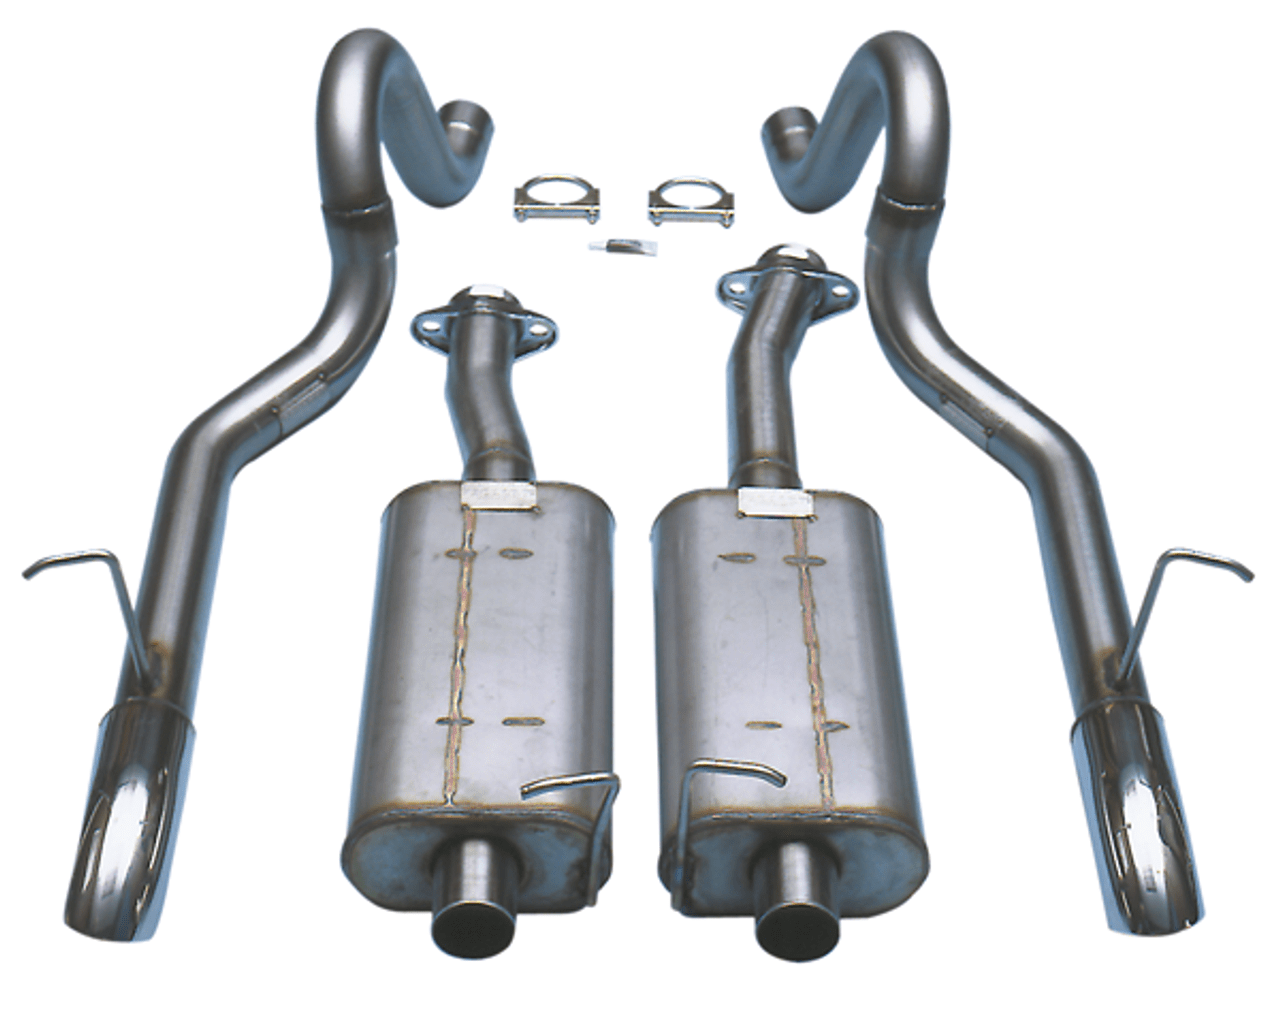 bassani cat back exhaust 2 1 2 stainless fits 87 93 gt mustang